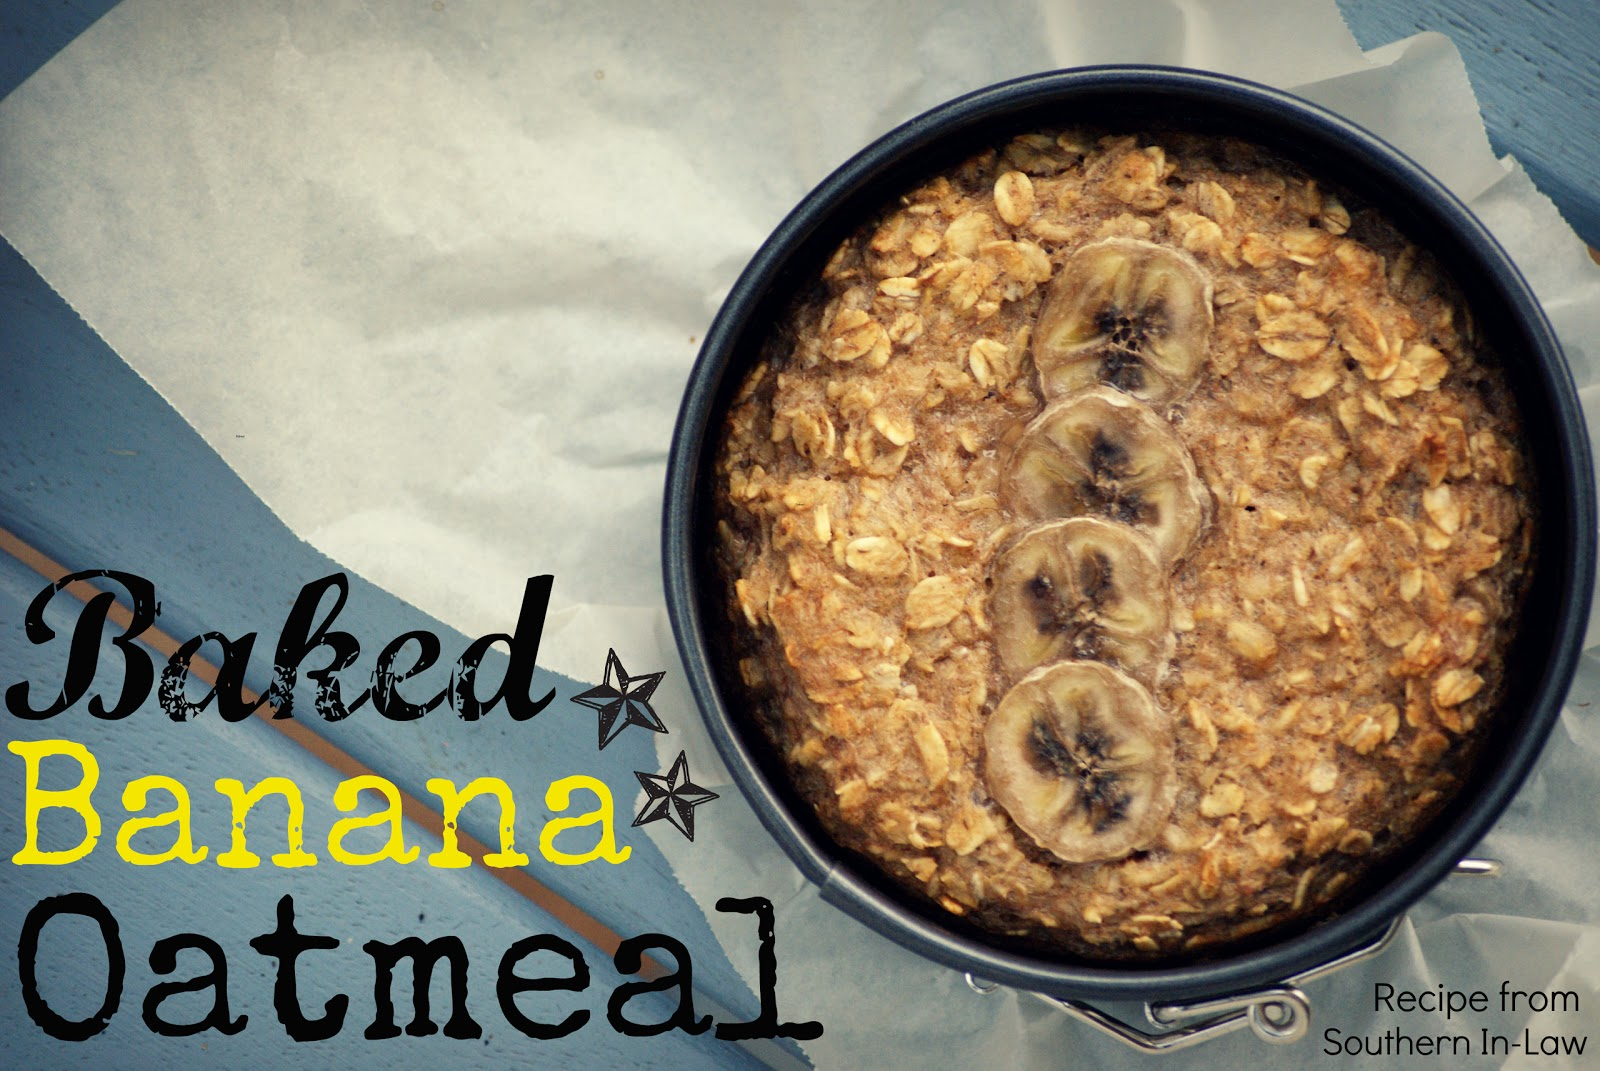 Southern In-Law: Recipe: Baked Banana Oatmeal